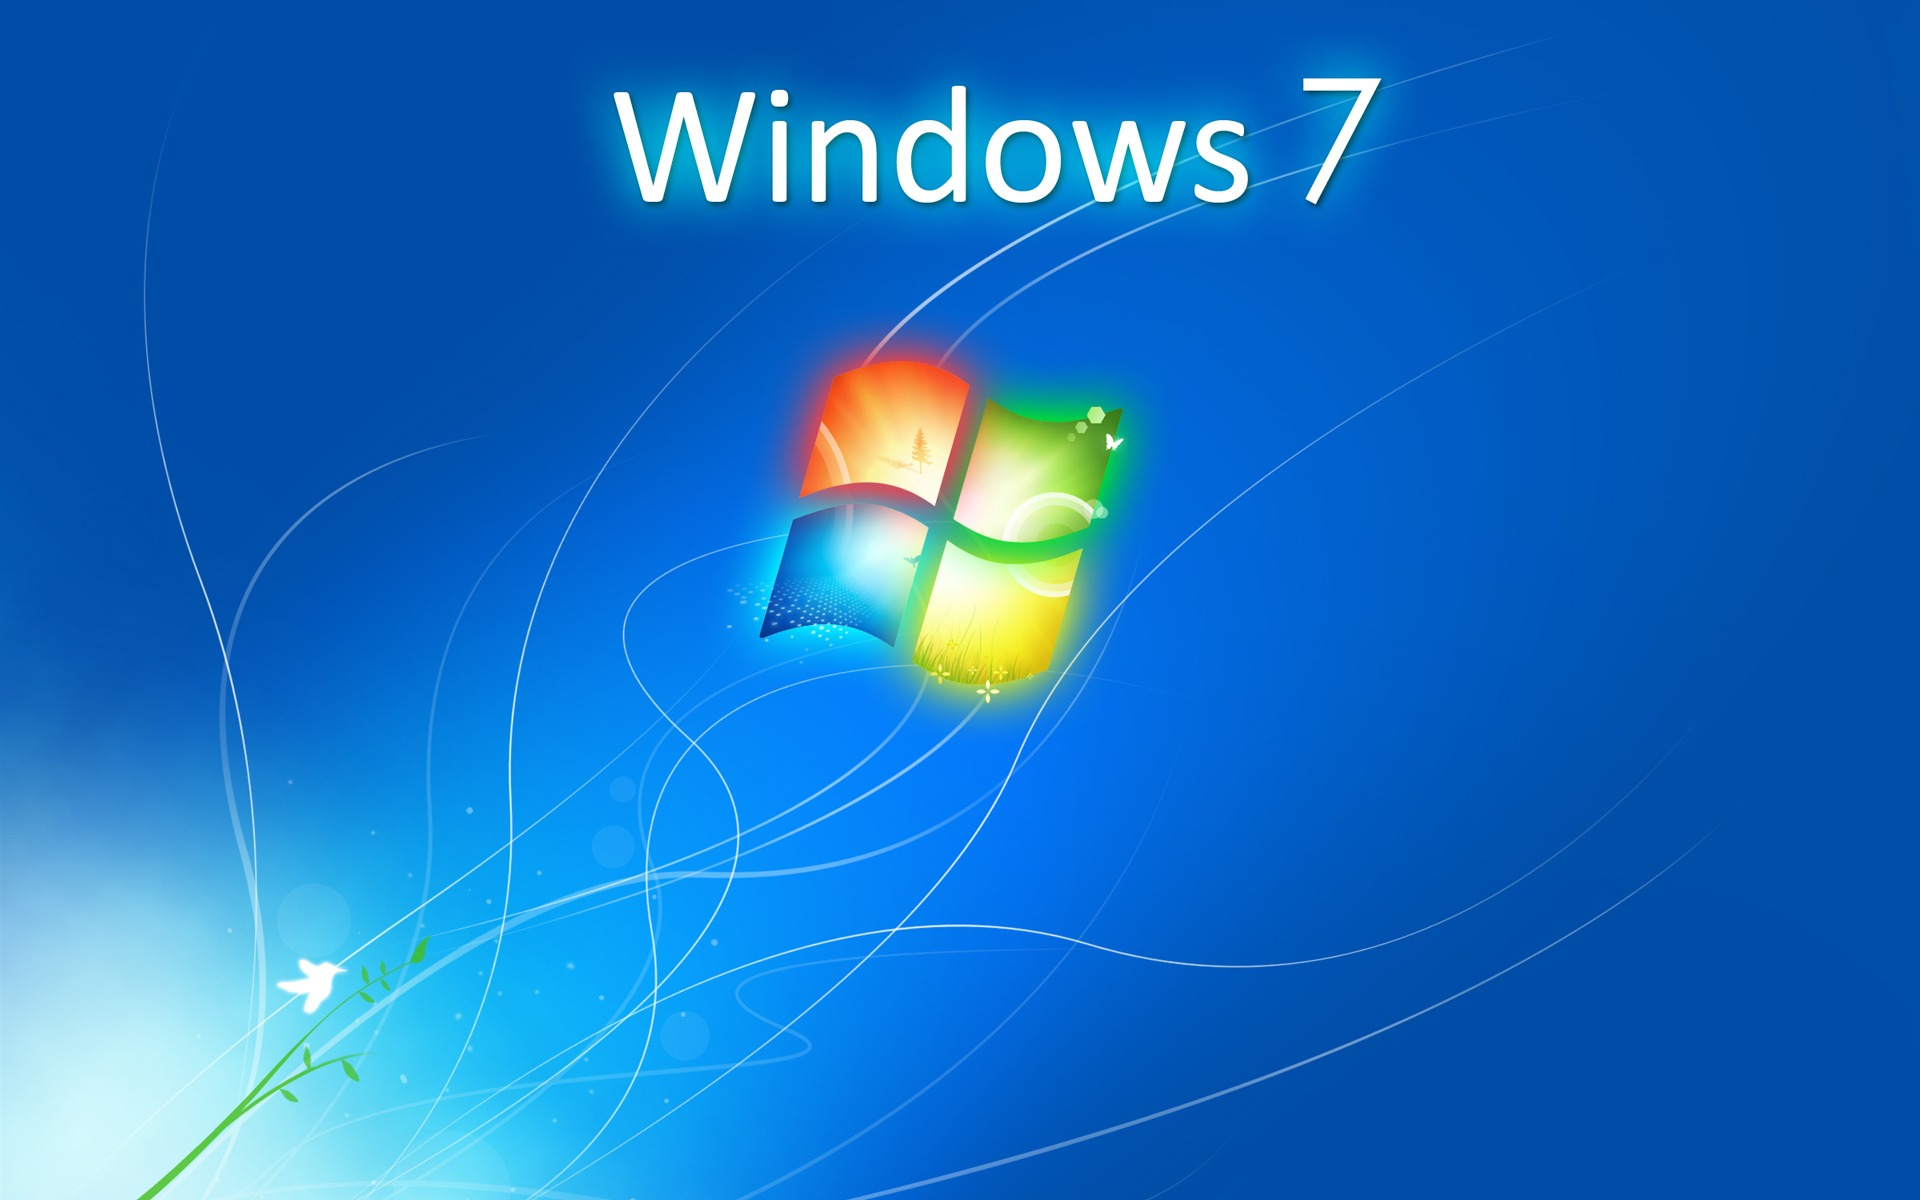 New Windows 7 Wallpaper Windows Seven Computers Wallpapers In Jpg Format For Free Download